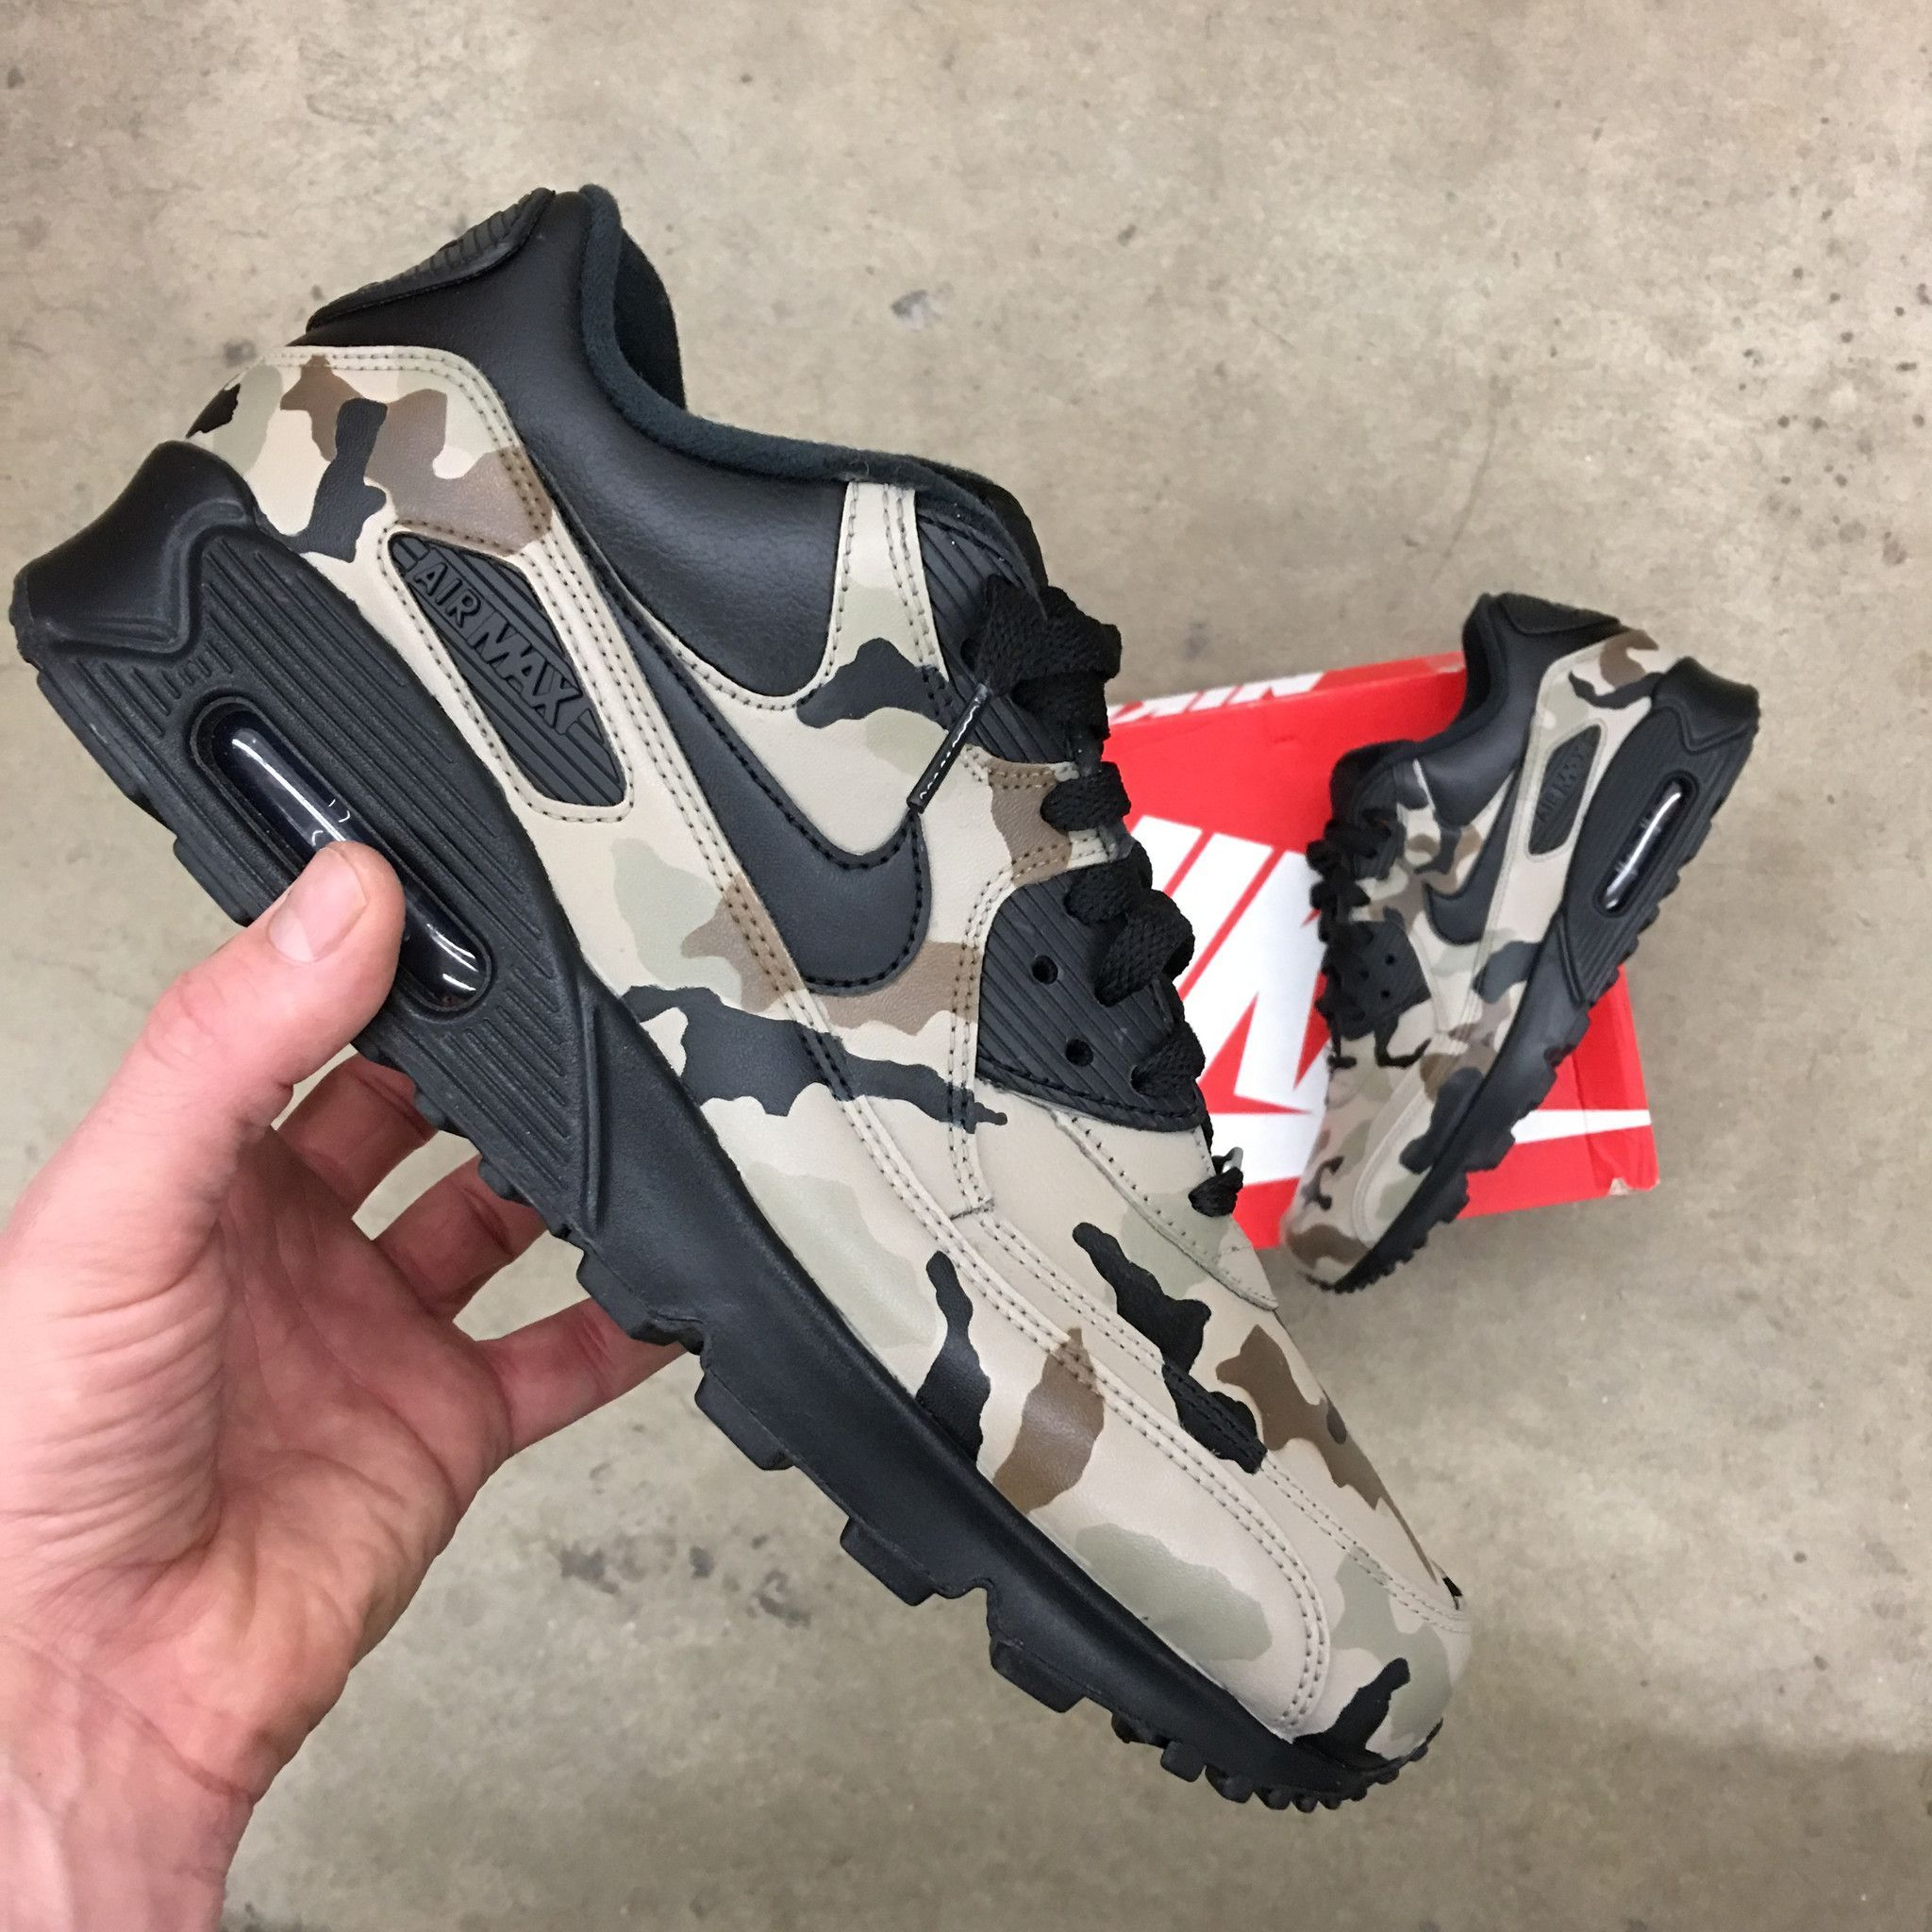 quality design de1c4 73478 Custom Hand painted Nike AM90 Desert Camo Shoes. Each pair is hand painted  and coated with an acrylic clear coat. Paint is 100% permanent. Made in USA.